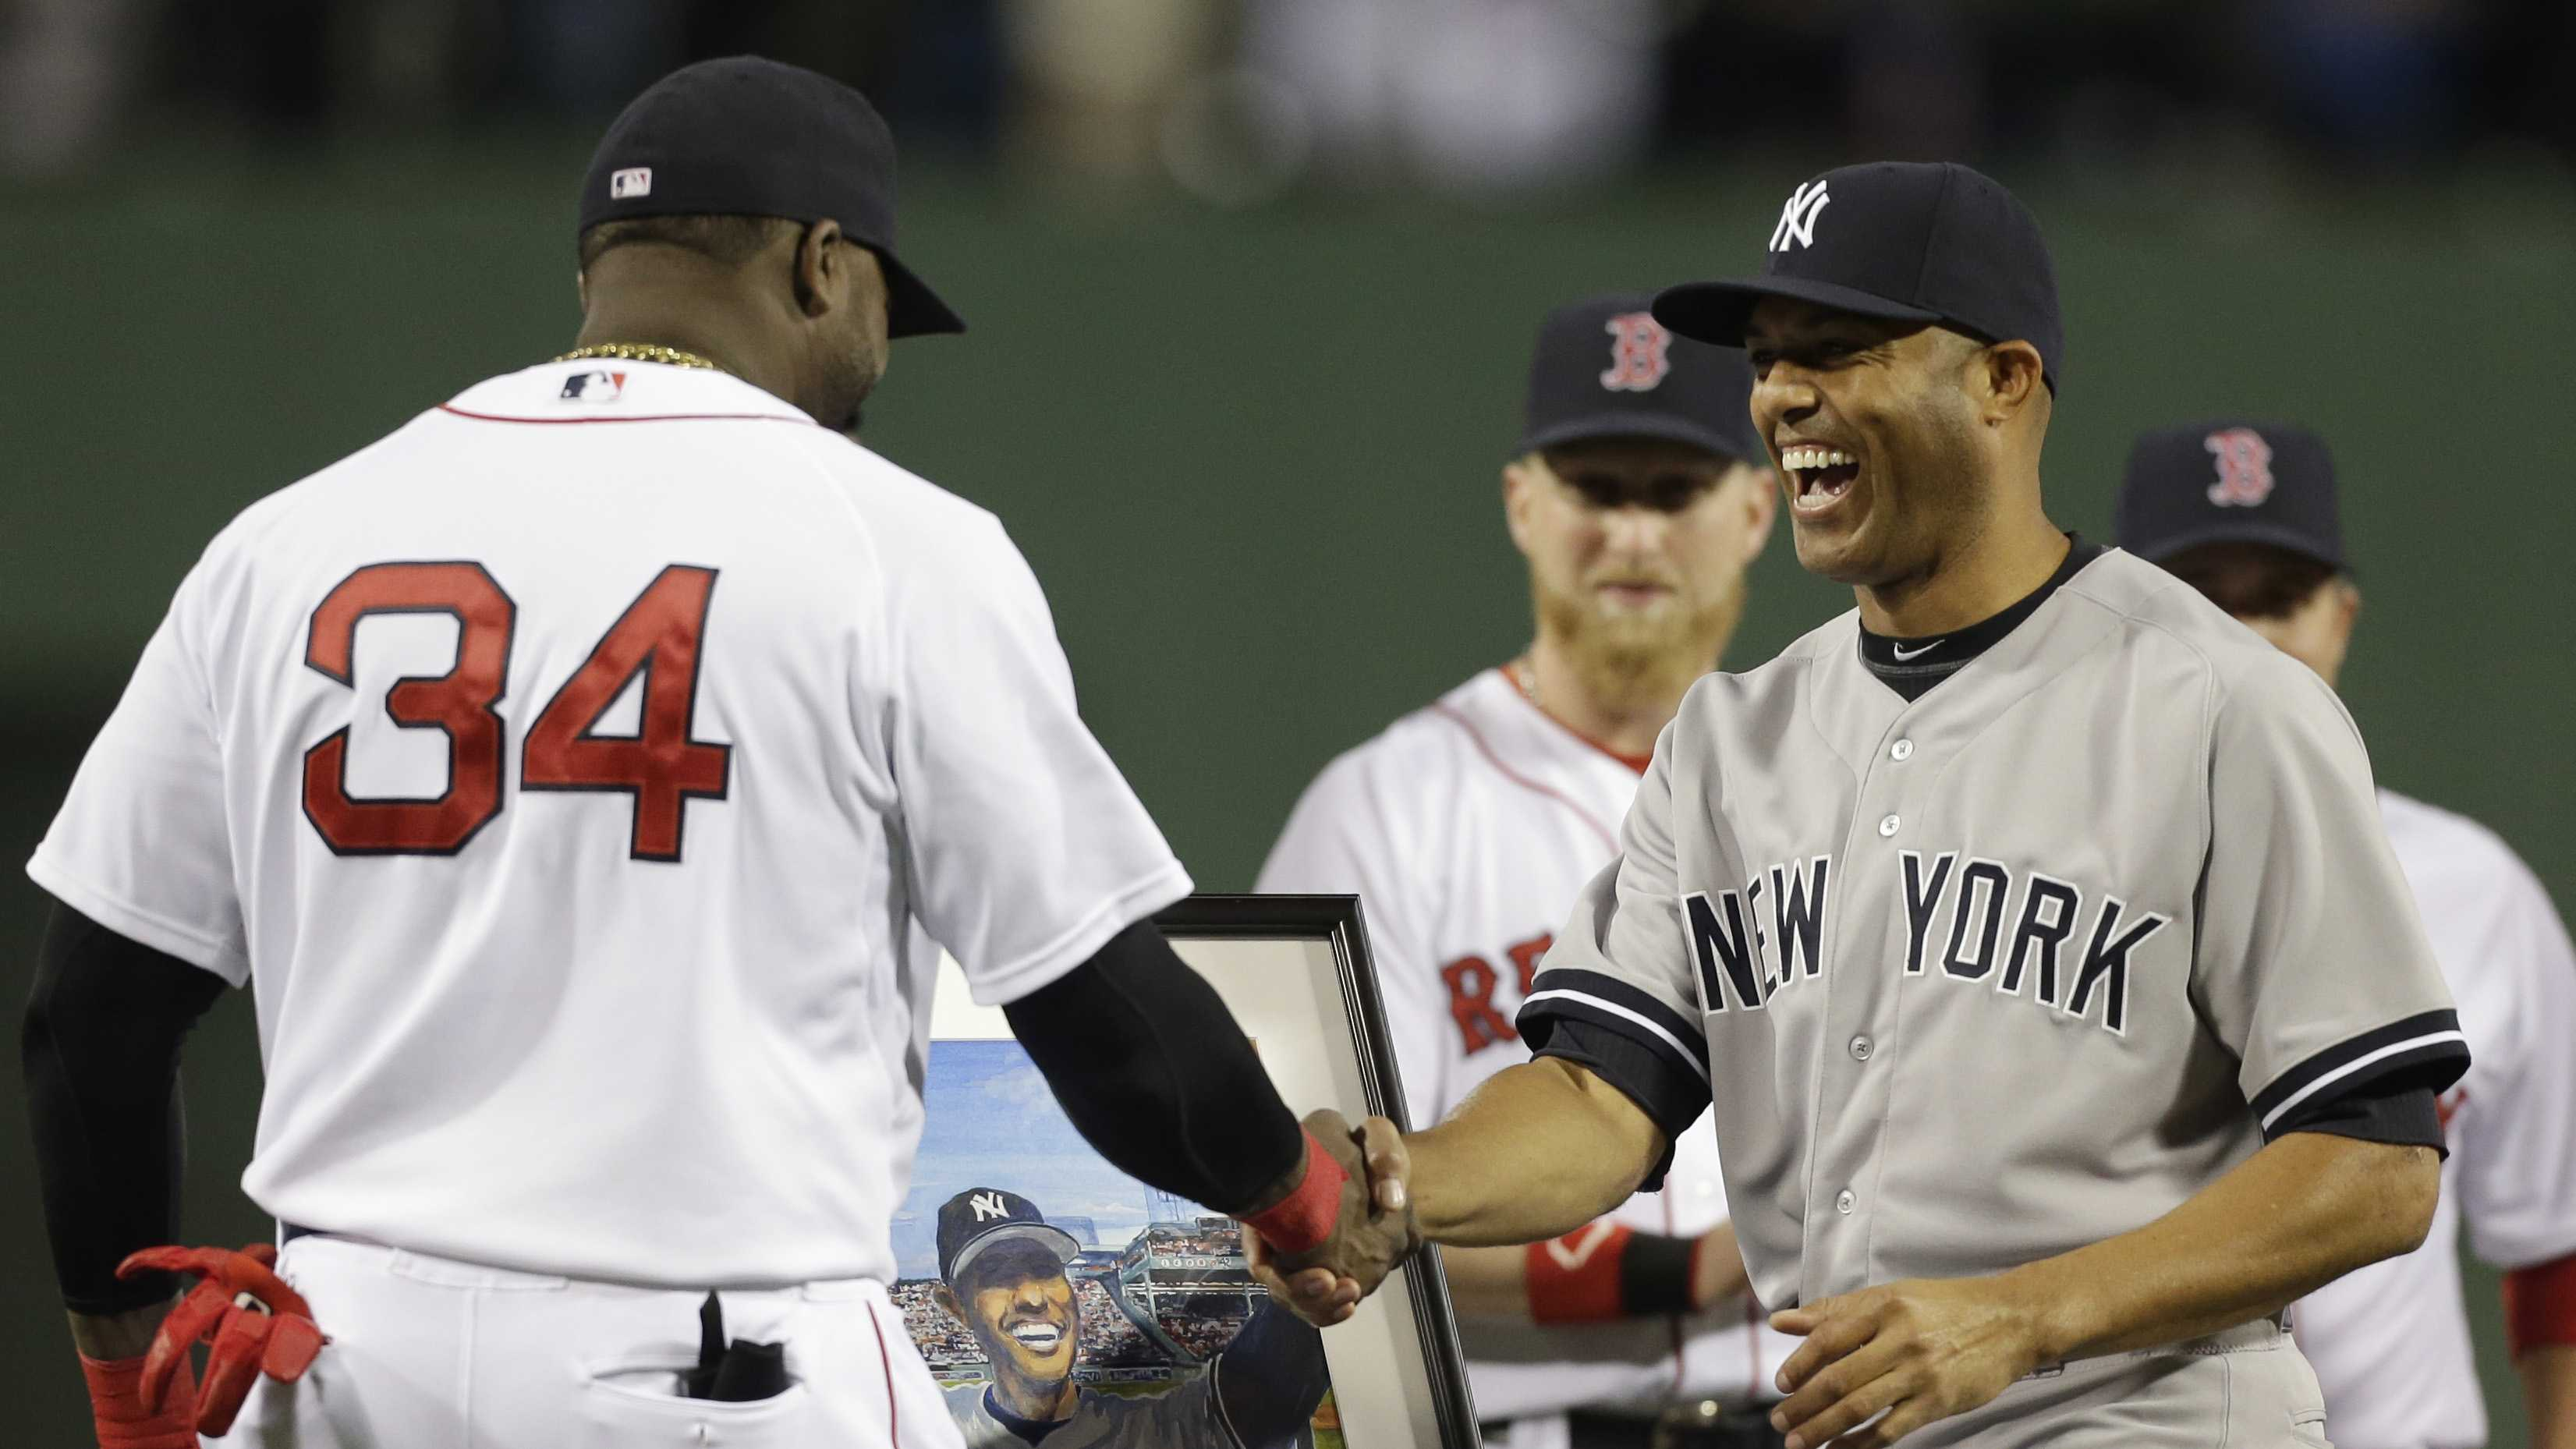 New York Yankees relief pitcher Mariano Rivera, right, shakes hands with Boston Red Sox's David Ortiz, left, as Ortiz presents him with a portrait, behind, during a tribute to Rivera before the start of a baseball game at Fenway Park, Sept. 15, 2013.